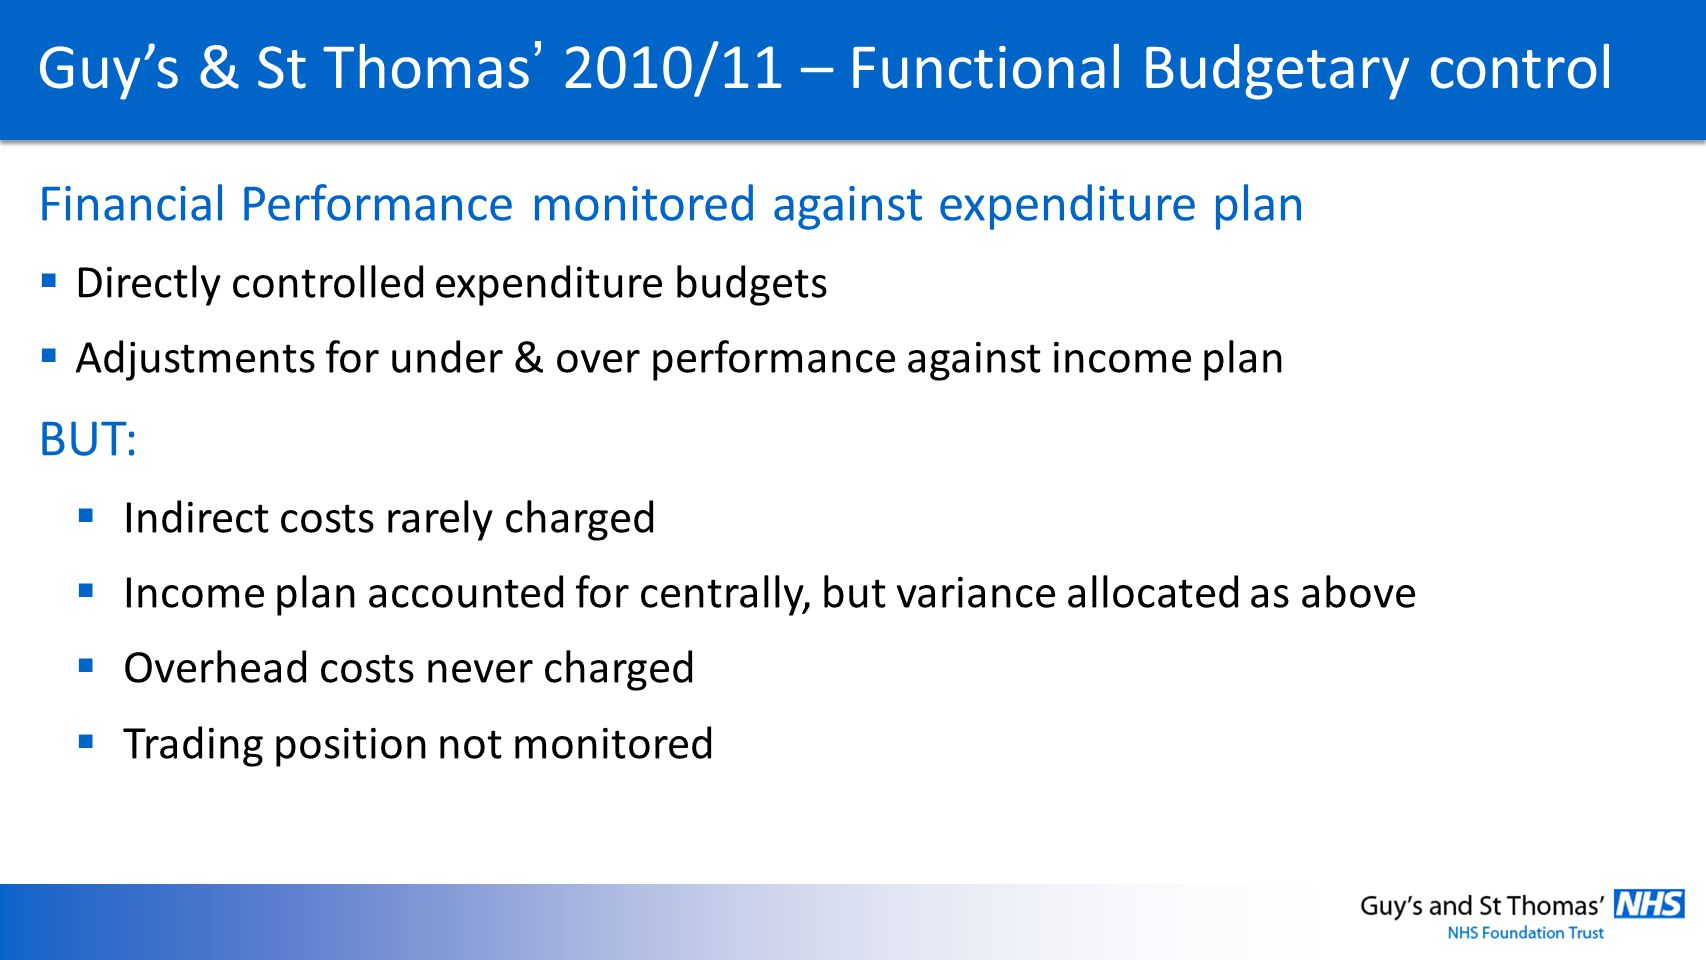 Guys & St Thomas 2010/11 – Functional Budgetary control Financial Performance monitored against expenditure plan Directly controlled expenditure budgets Adjustments for under & over performance against income plan BUT: Indirect costs rarely charged Income plan accounted for centrally, but variance allocated as above Overhead costs never charged Trading position not monitored